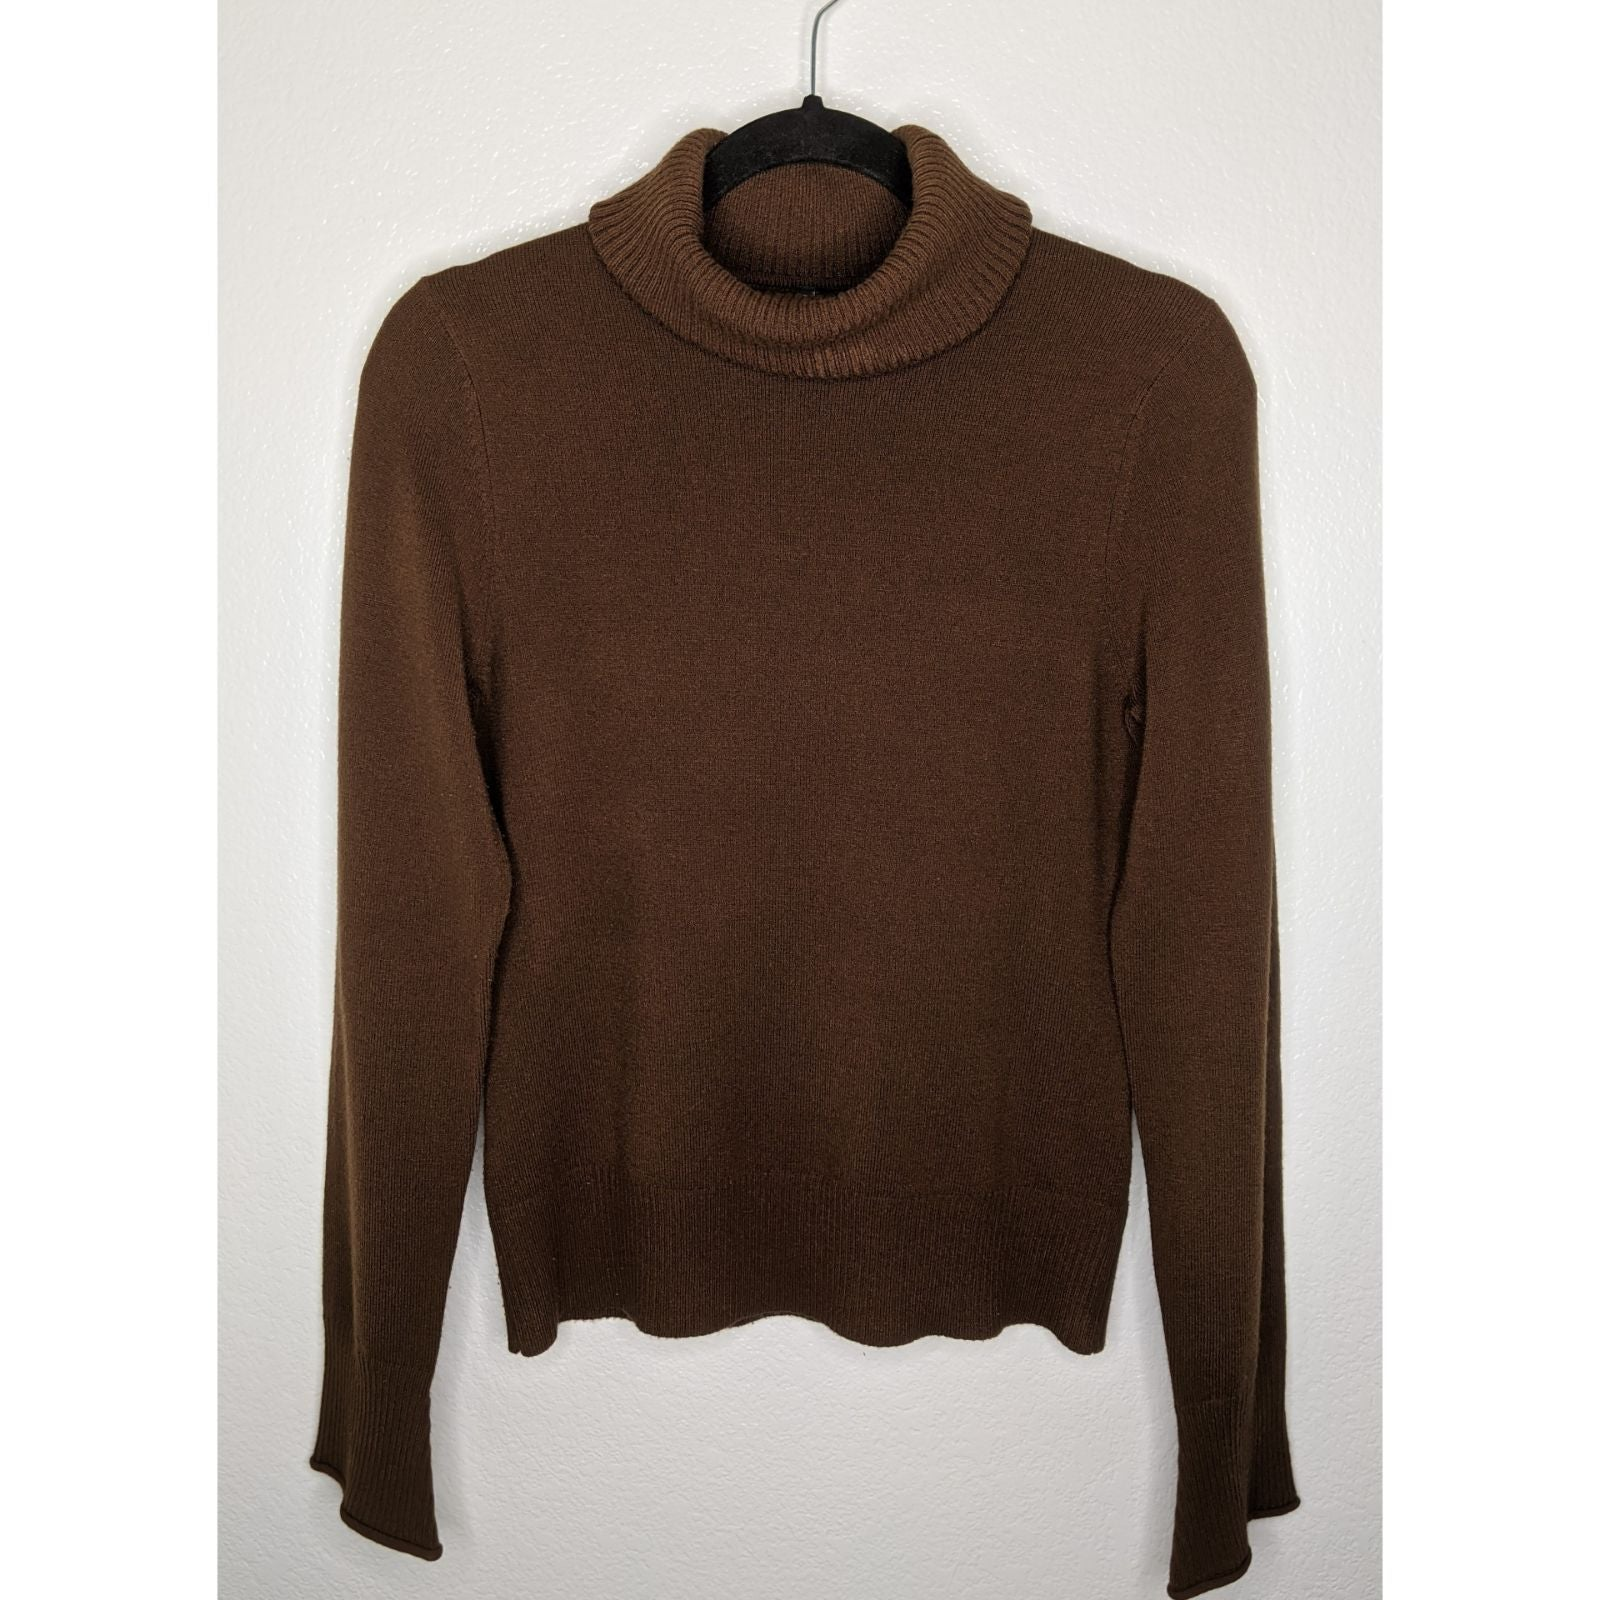 Brown Sweater Turtleneck